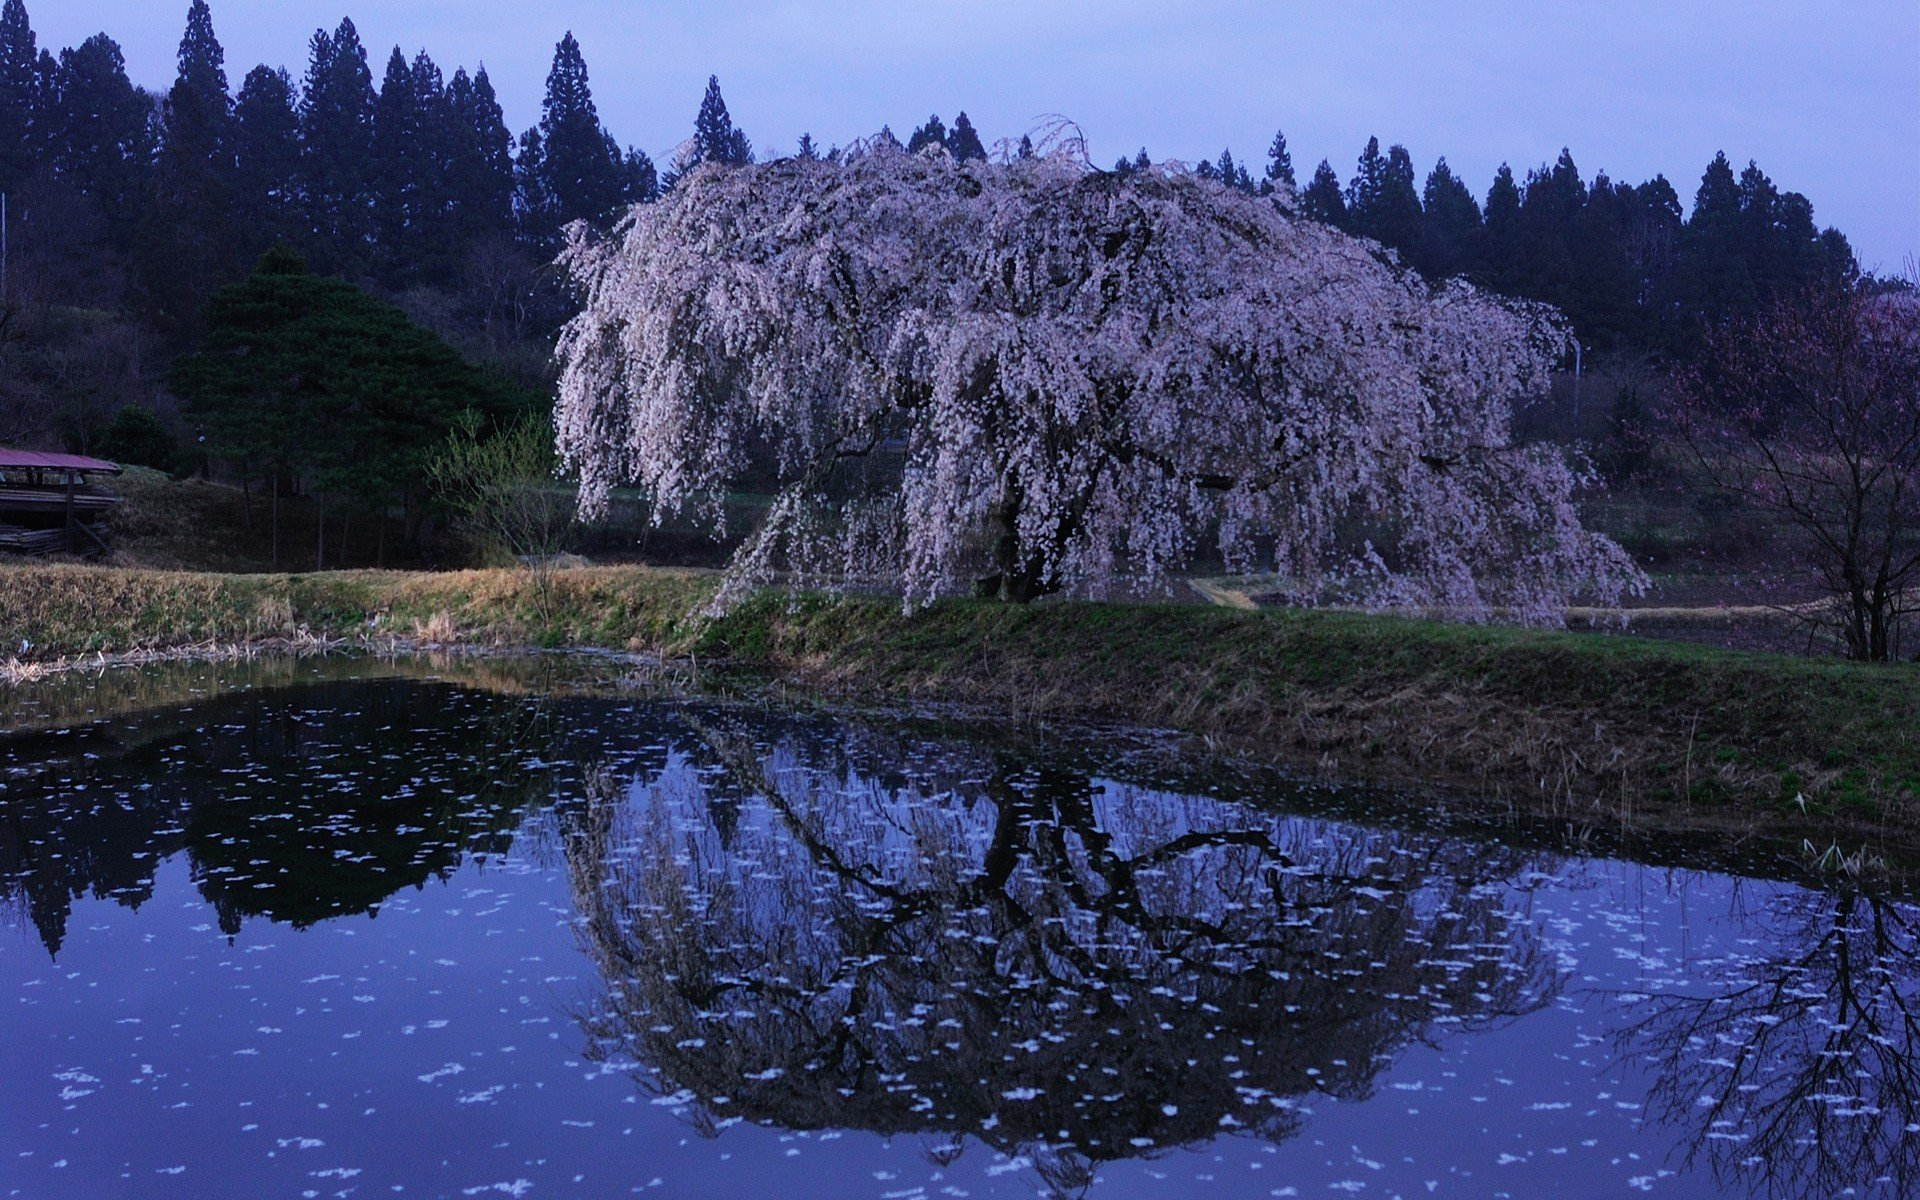 Water Japan cherry blossoms flowers spring reflections